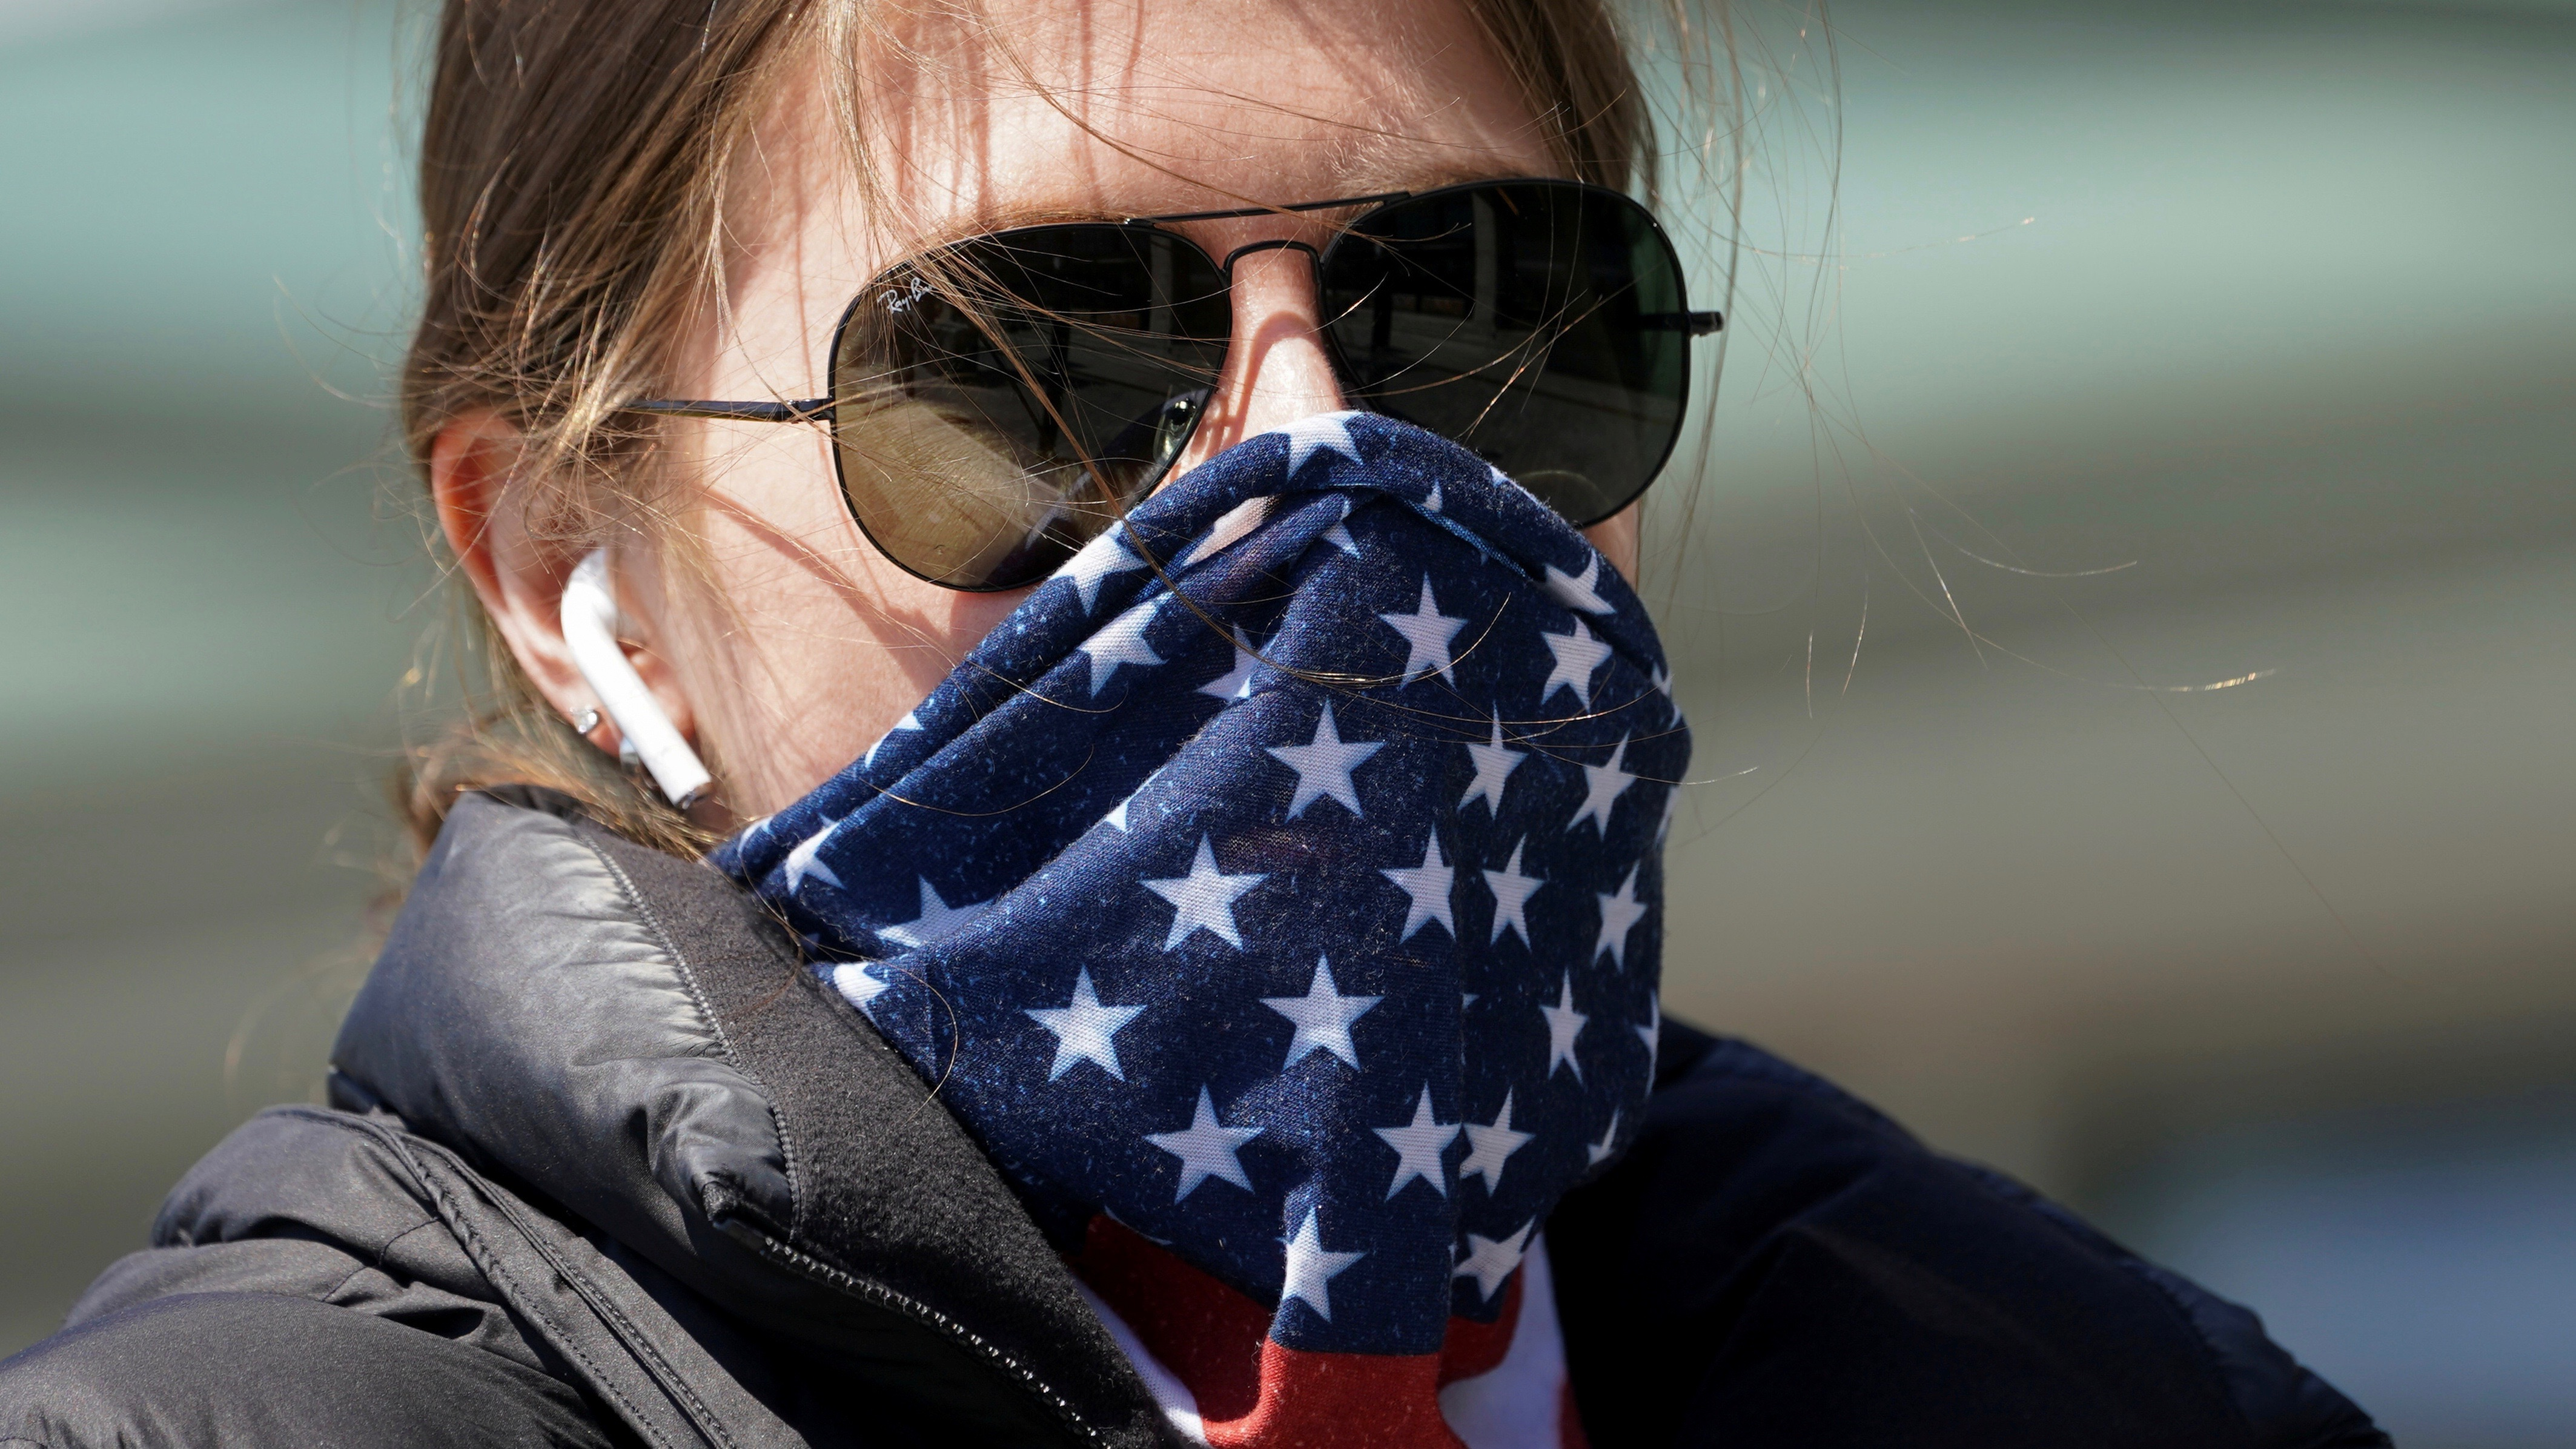 Woman with face covered by Stars and Stripes bandana.